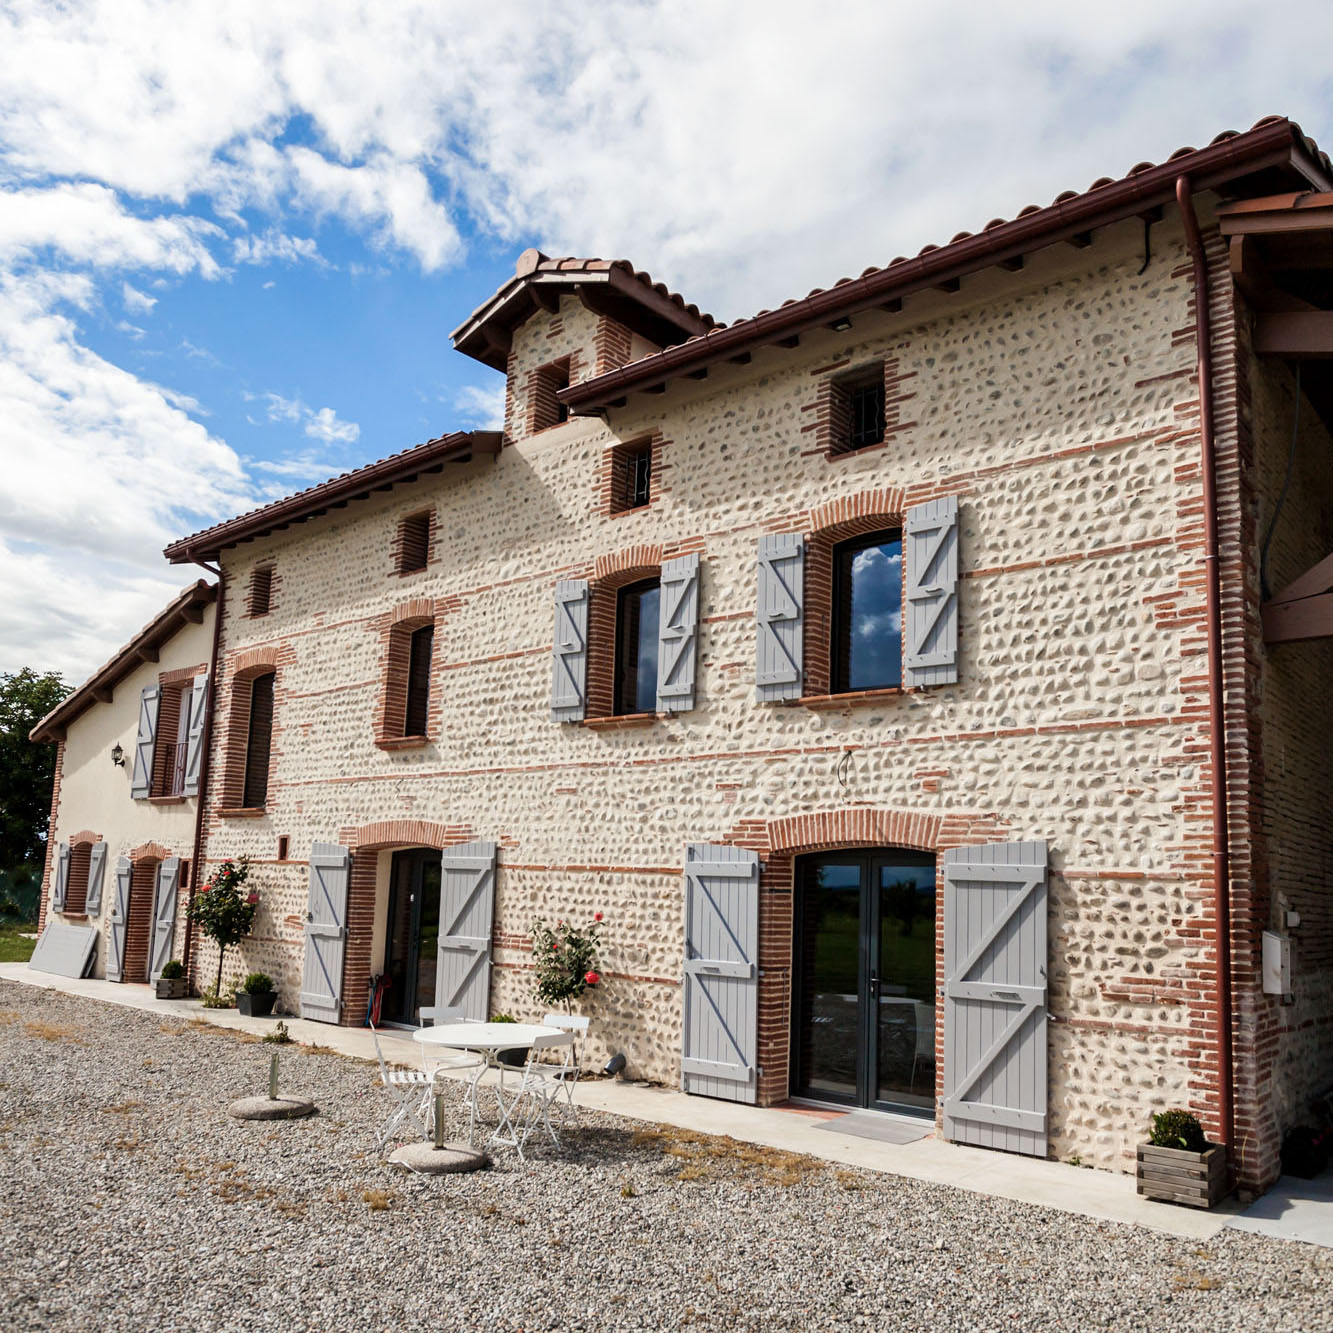 Contemporary Refurbished Farmhouse In A Small French